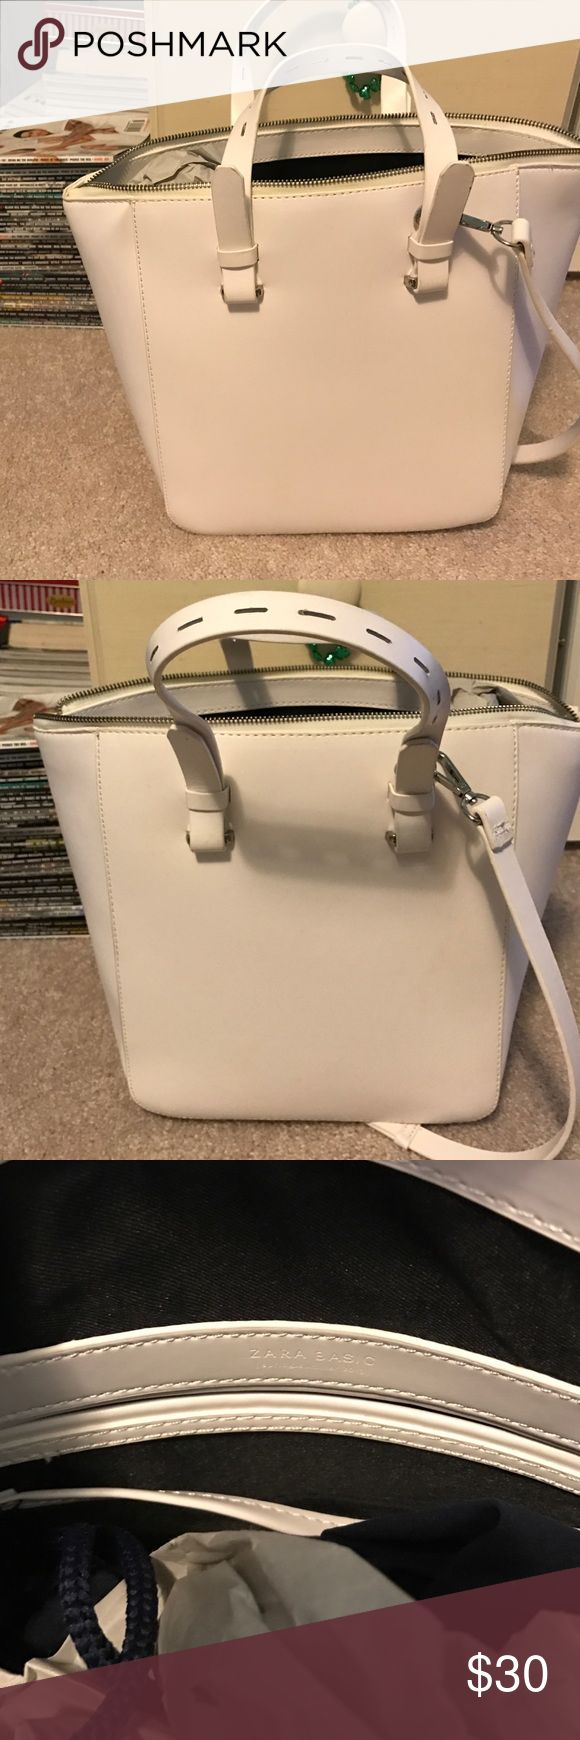 Zara Purse White, large purse with silver detail from Zara. Super cute and in great condition. Zara Bags Shoulder Bags